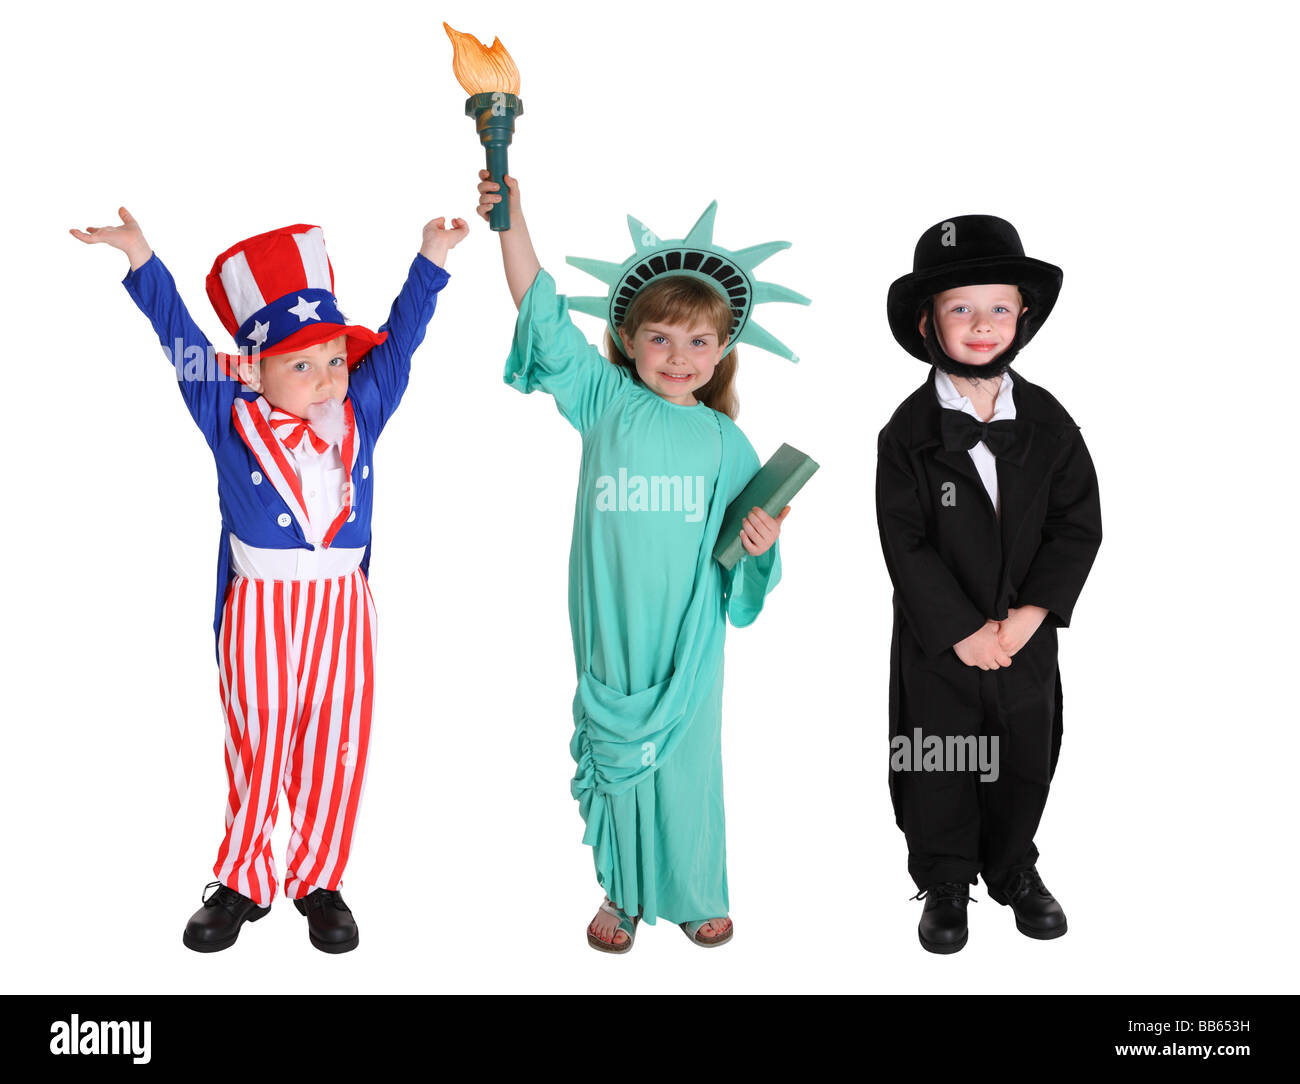 Kids dressed up like American characters - Stock Image